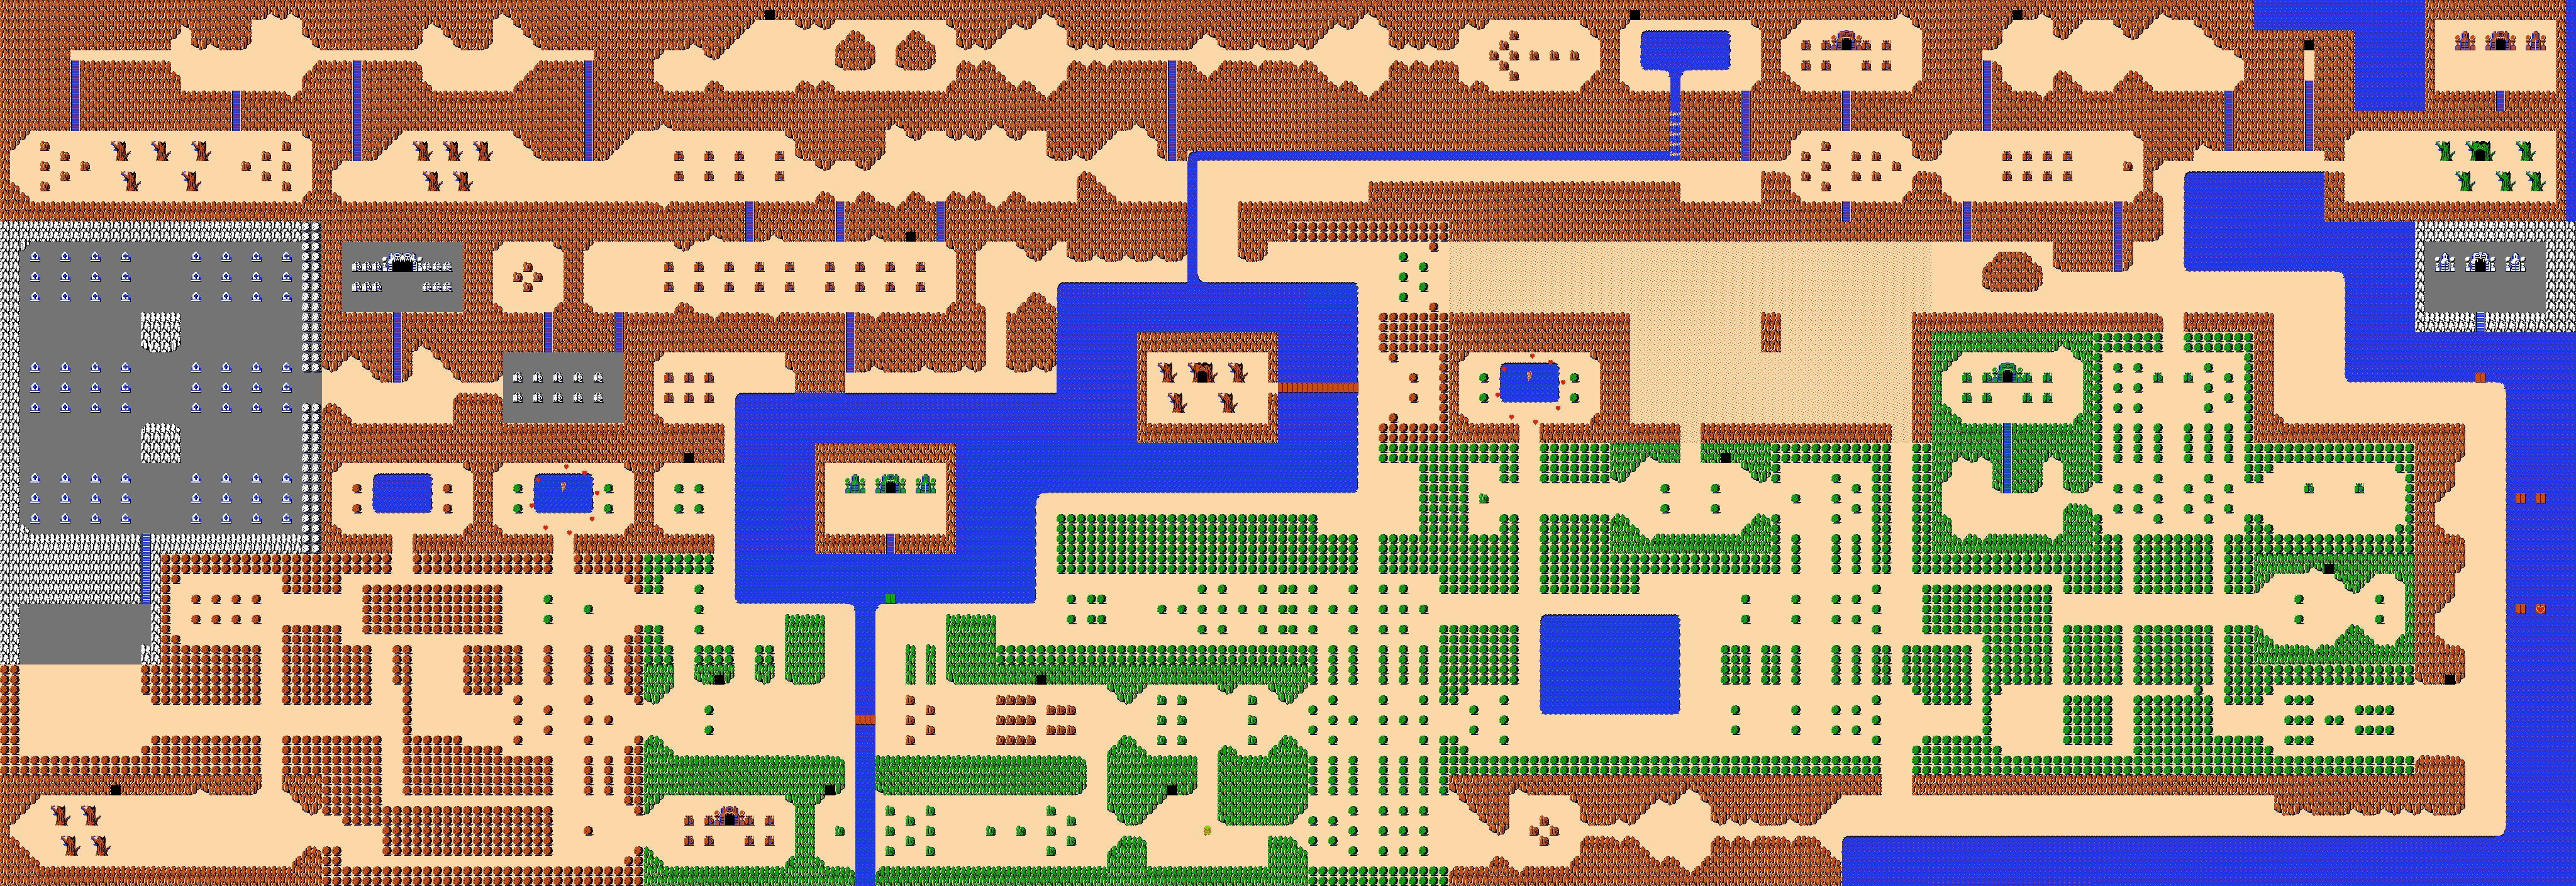 Zelda overworld map